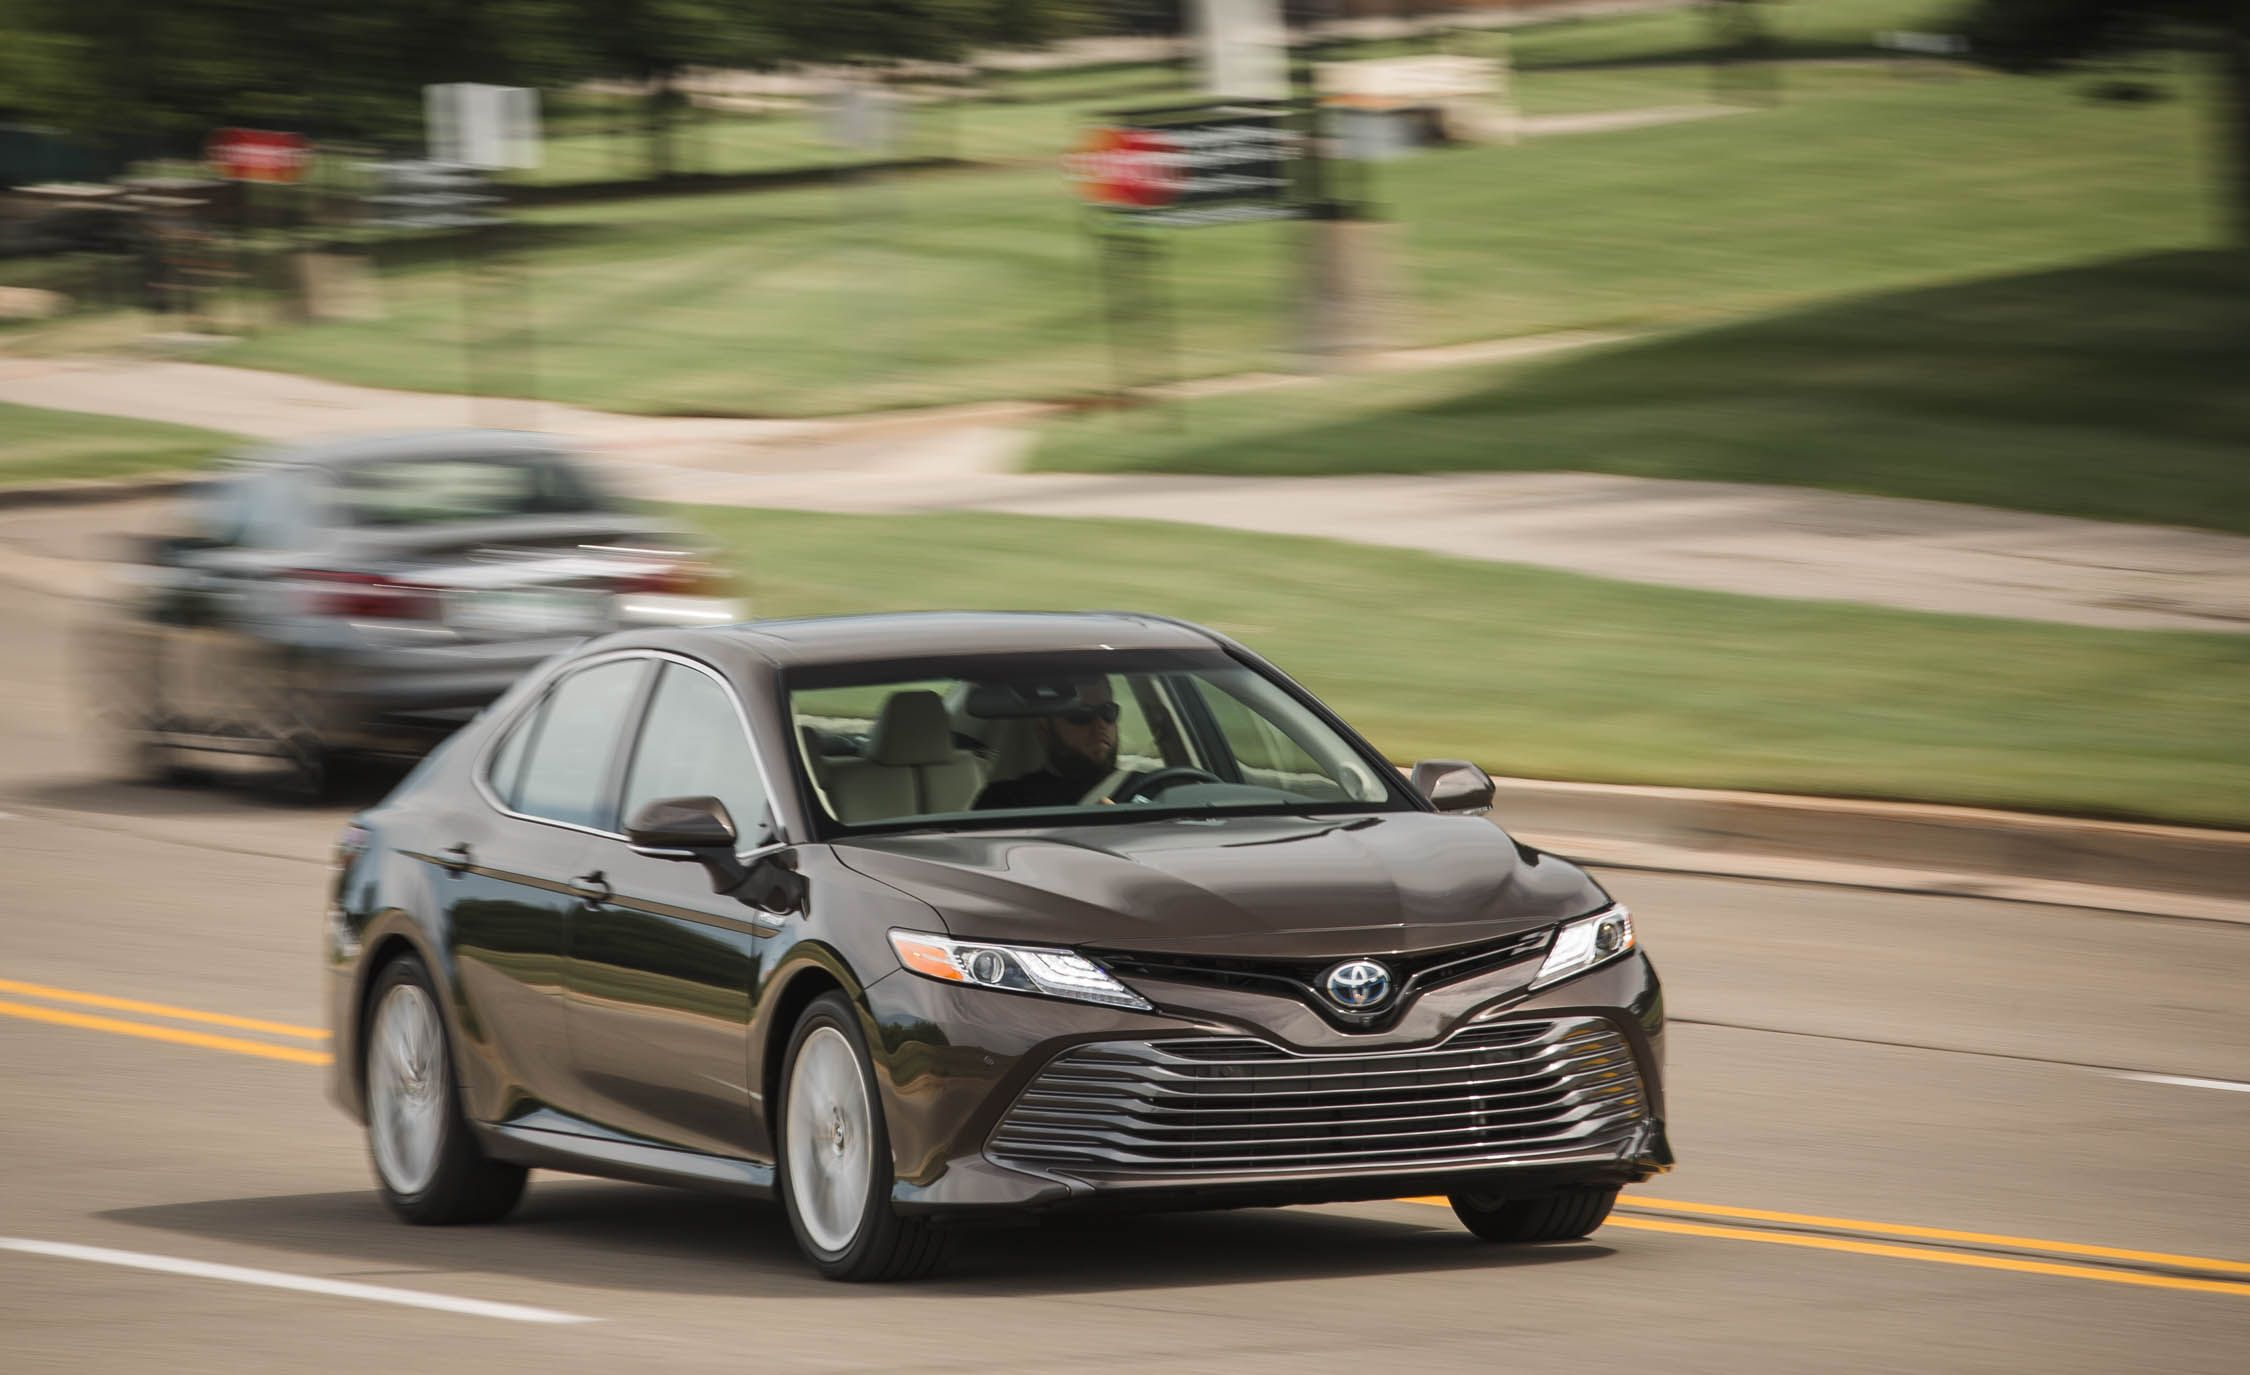 2018 Toyota Camry Xle Hybrid Test Review Car And Driver Drum Set Up Diagram Tuning